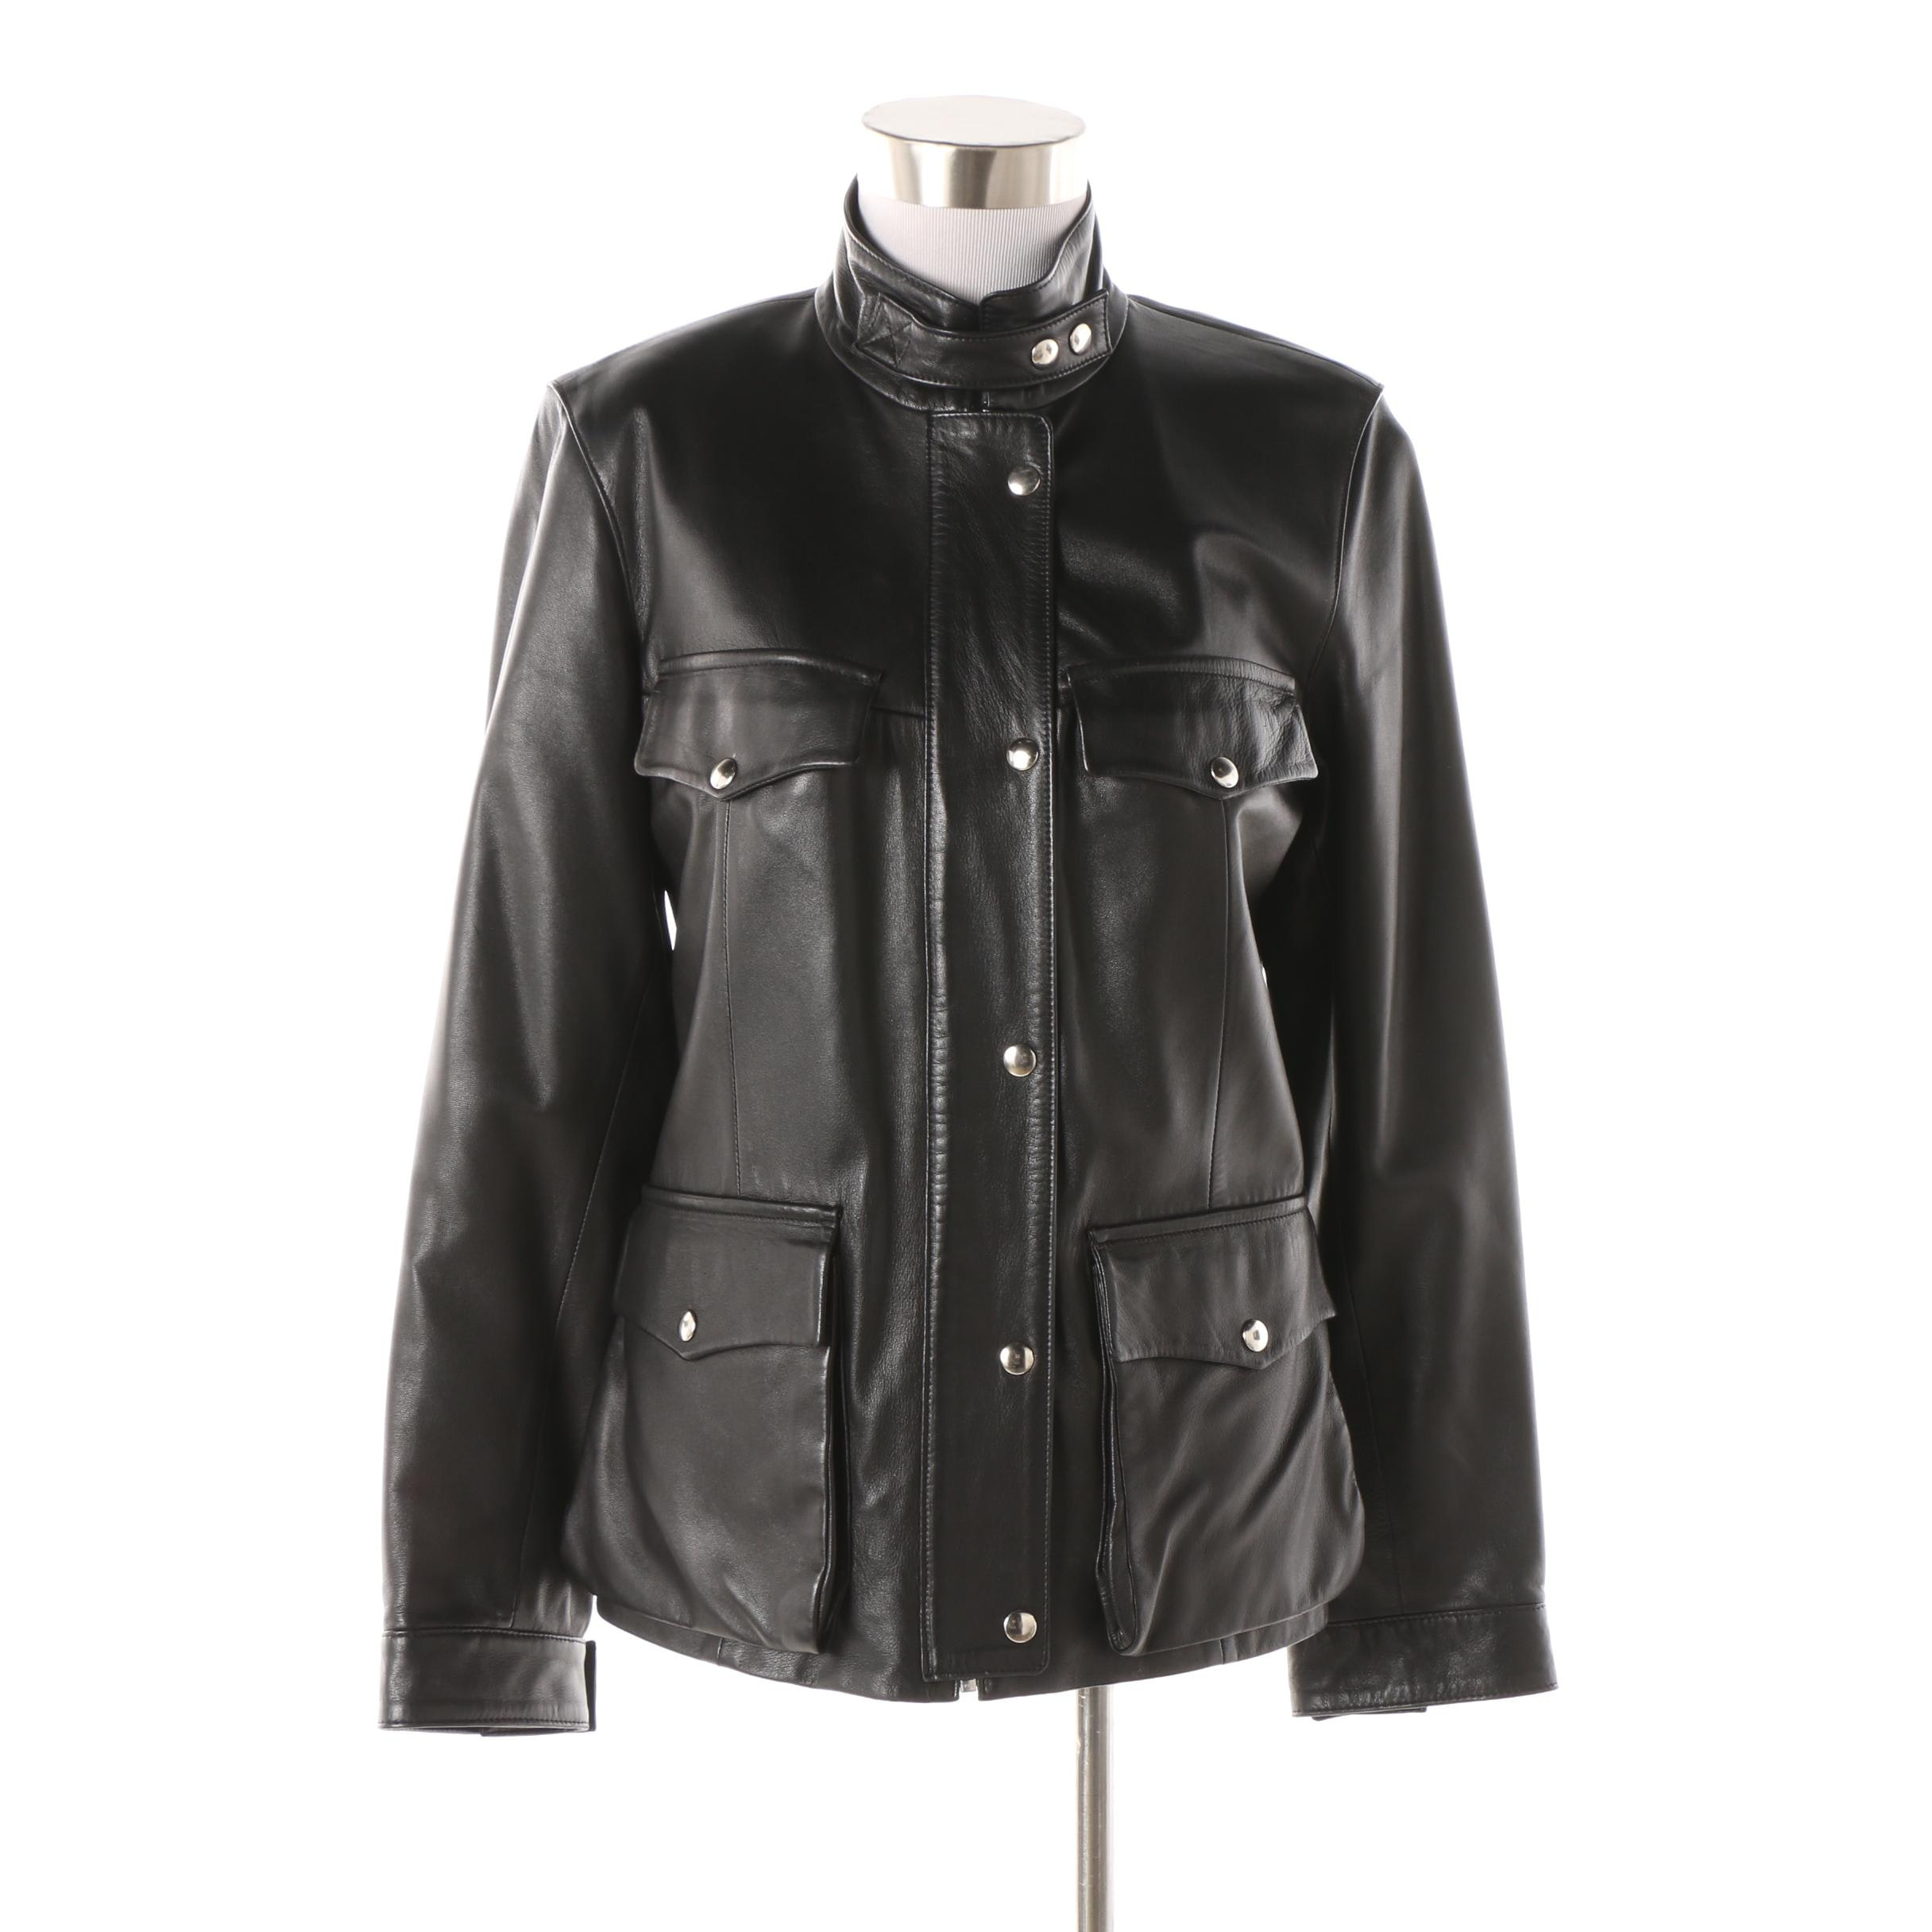 Women's Cuoieria Fiorentina Black Leather Jacket